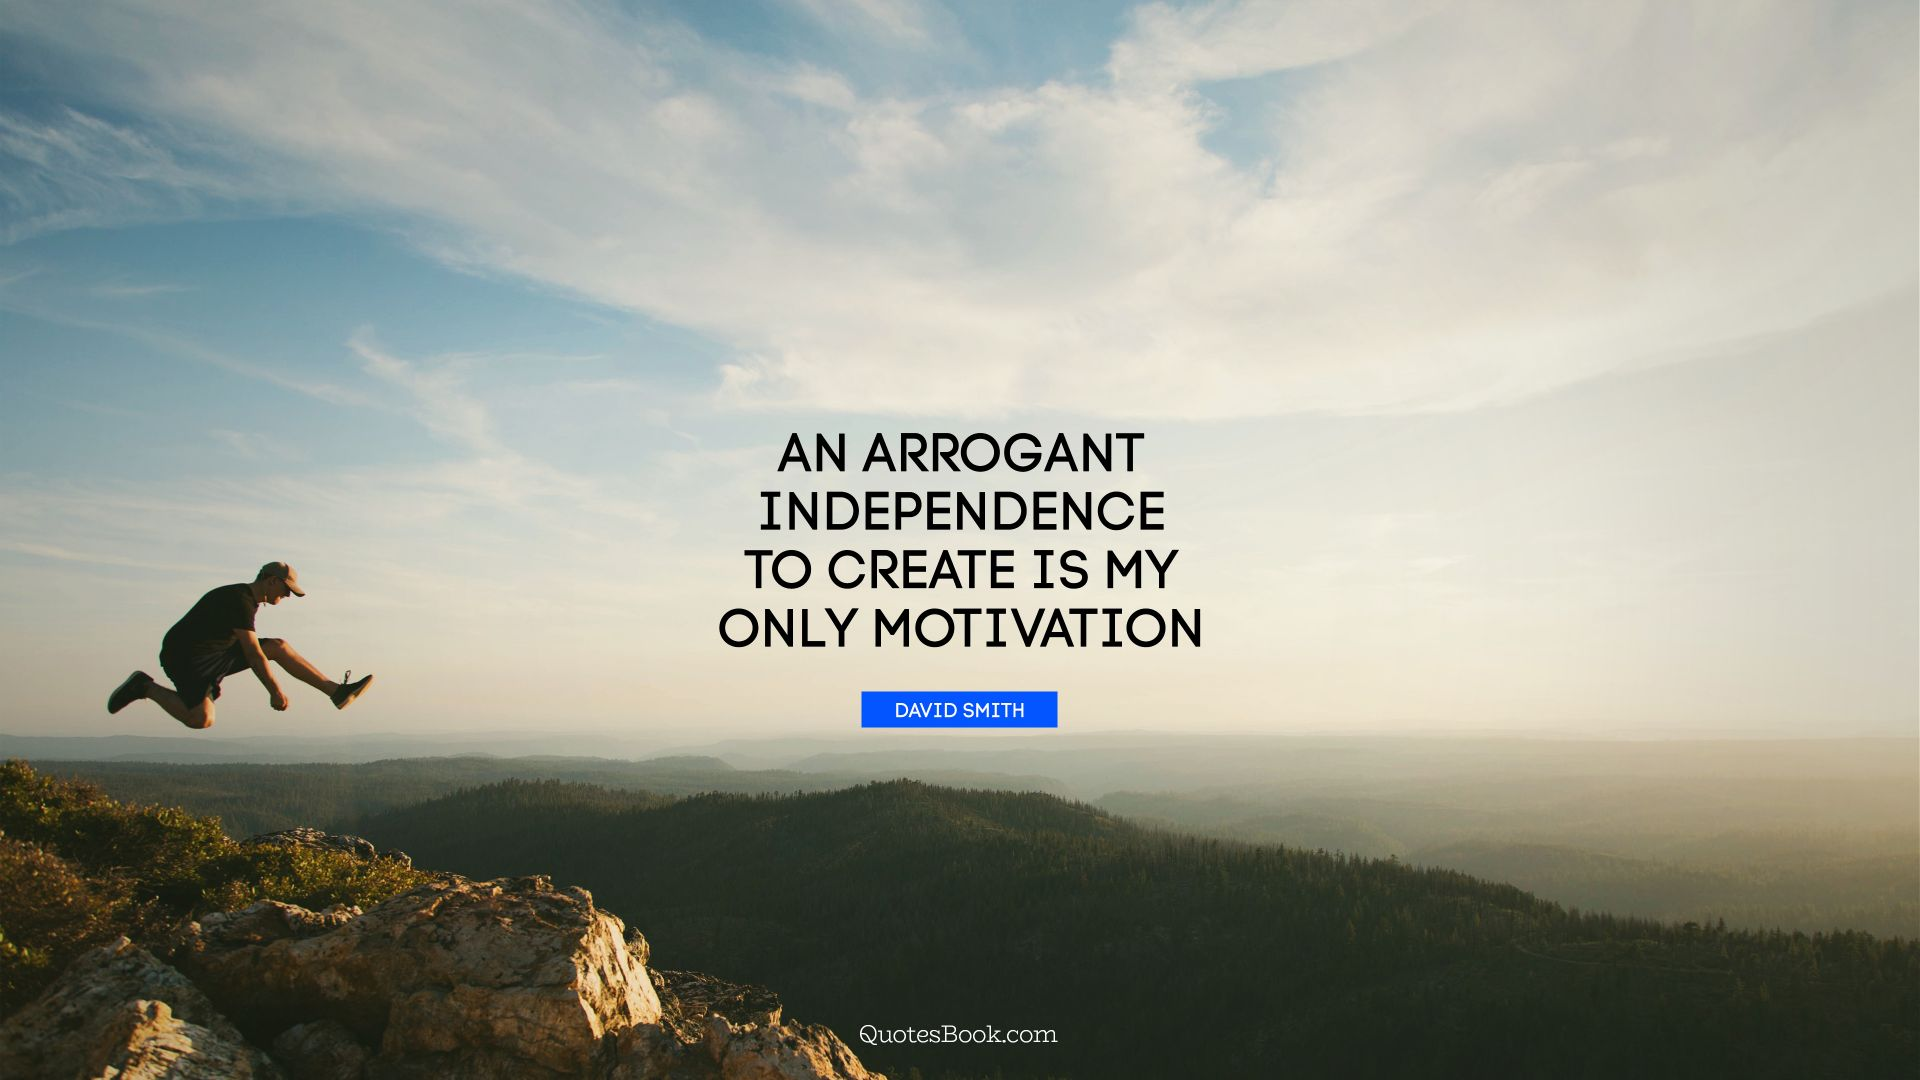 An arrogant independence to create is my only motivation. - Quote by David Smith